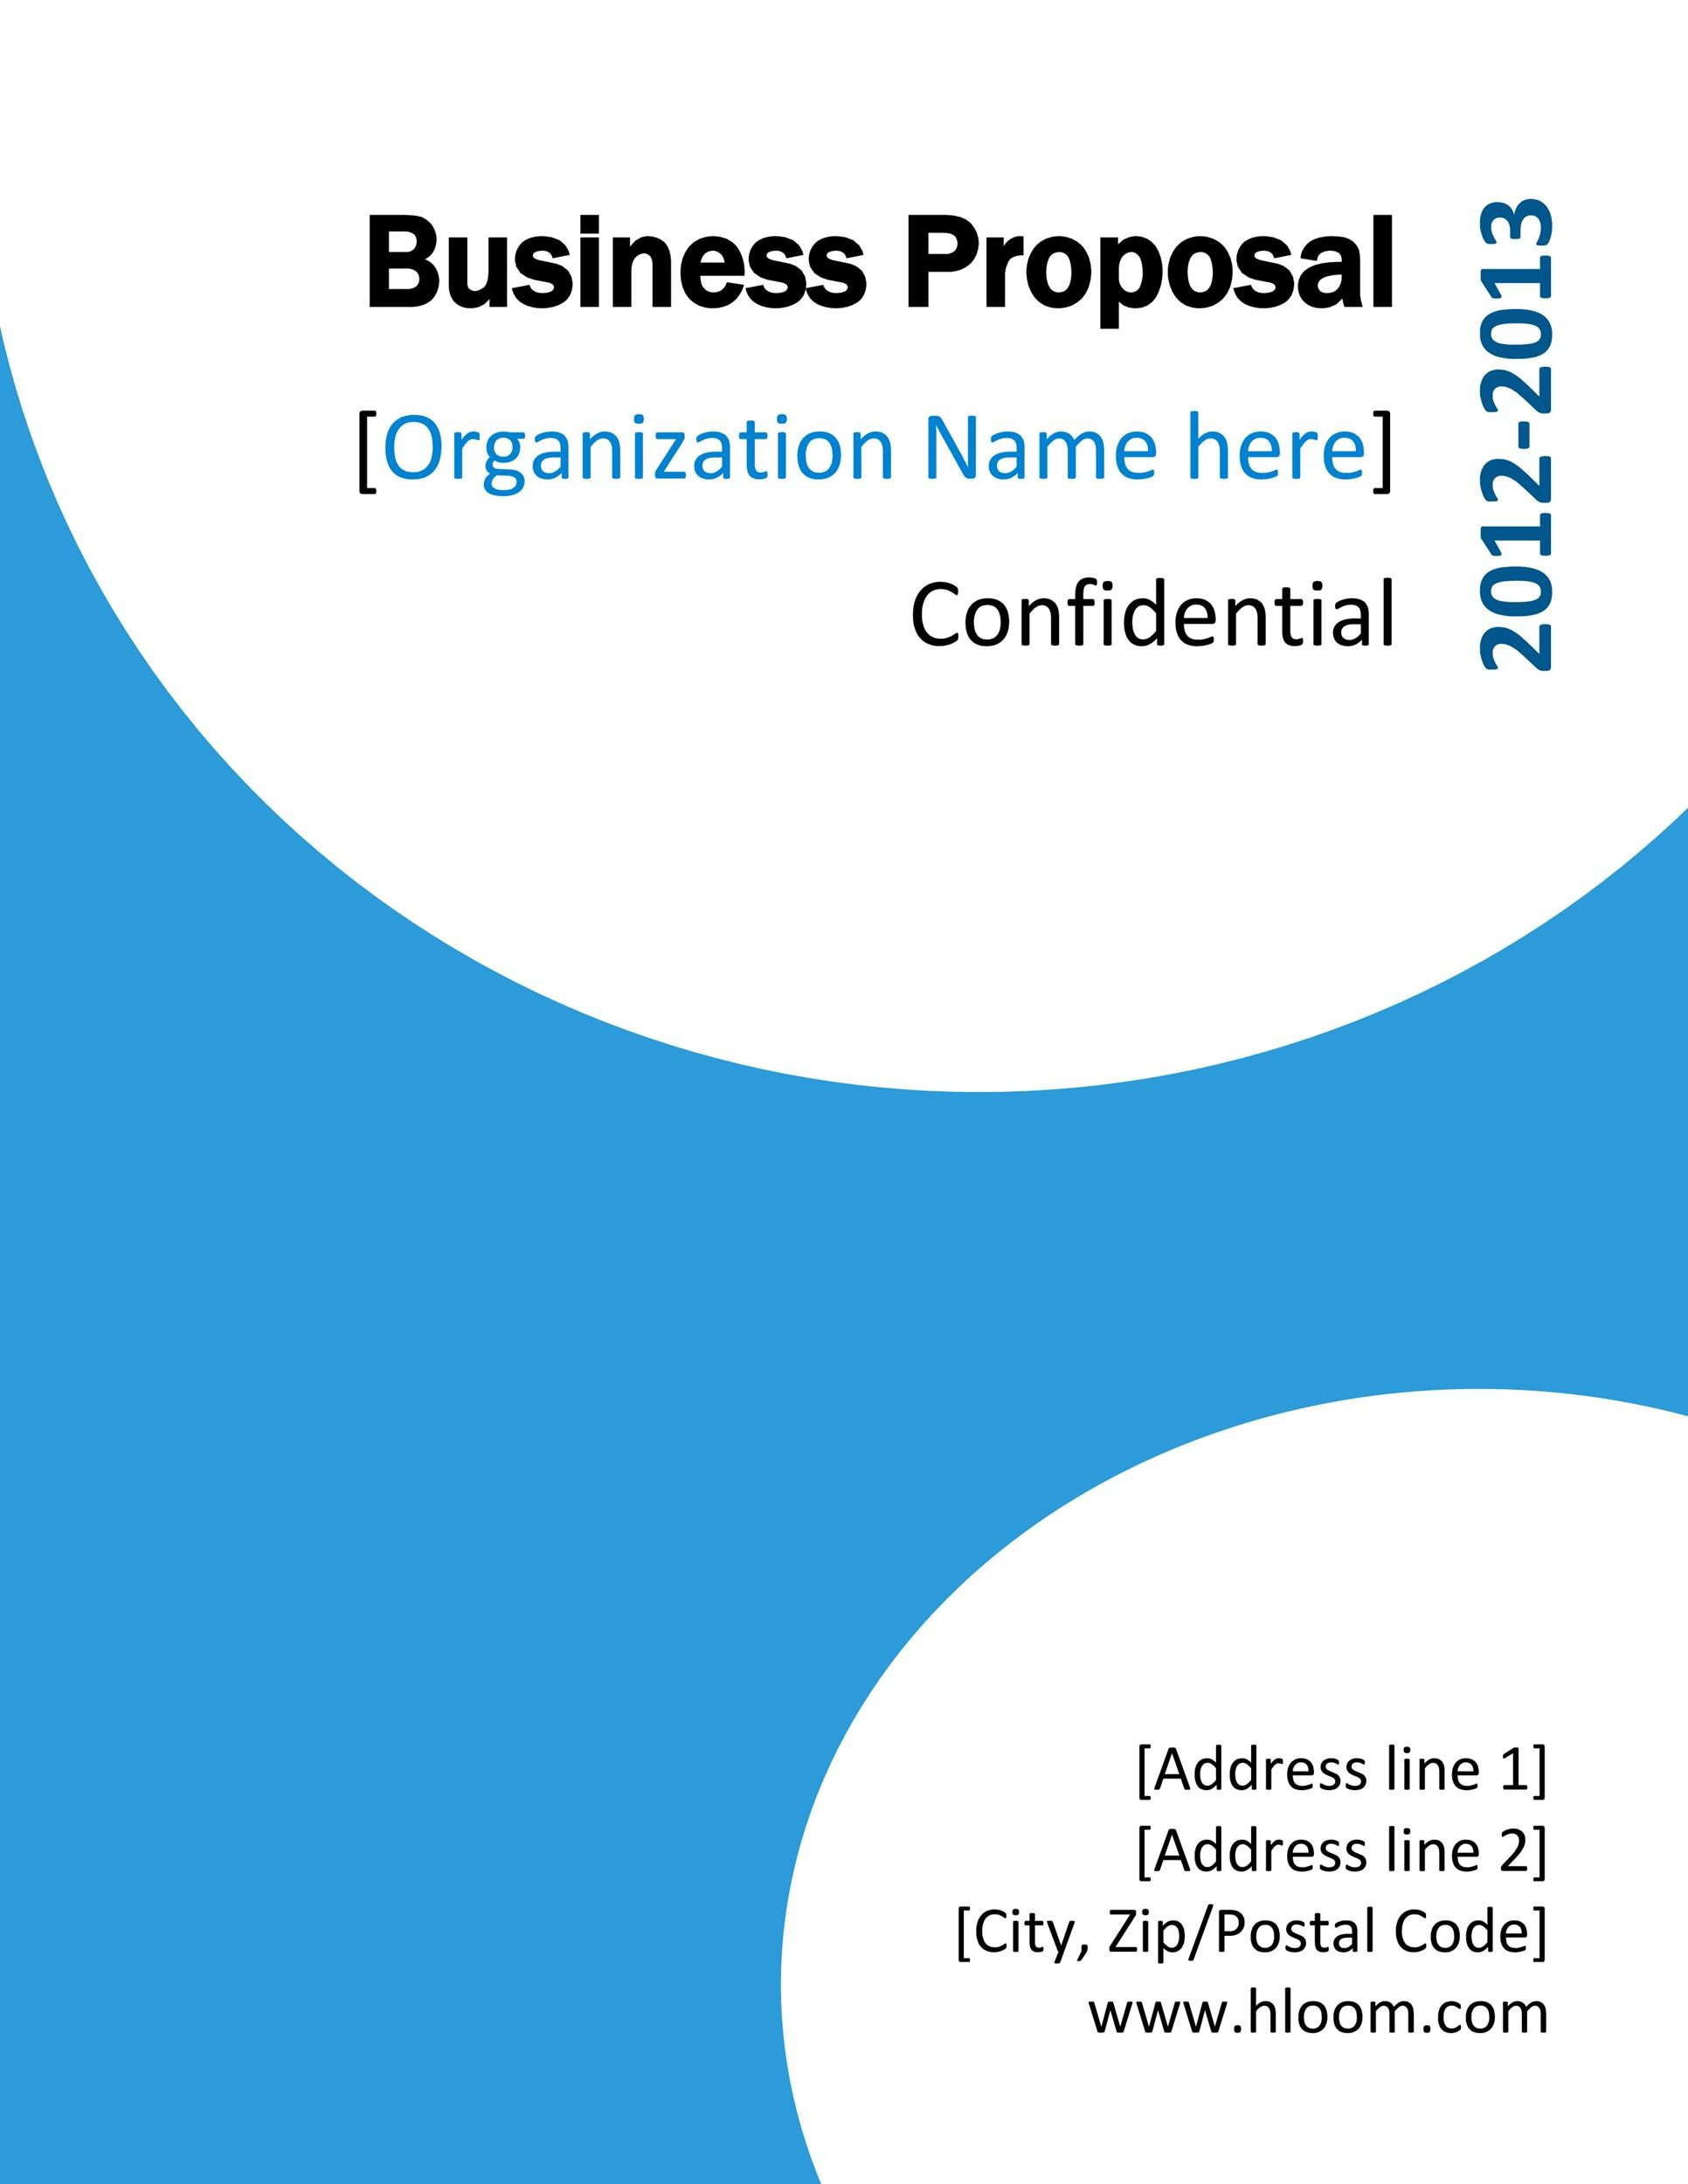 Business Proposal Sample Business Proposal Template Free – Free Business Proposal Templates